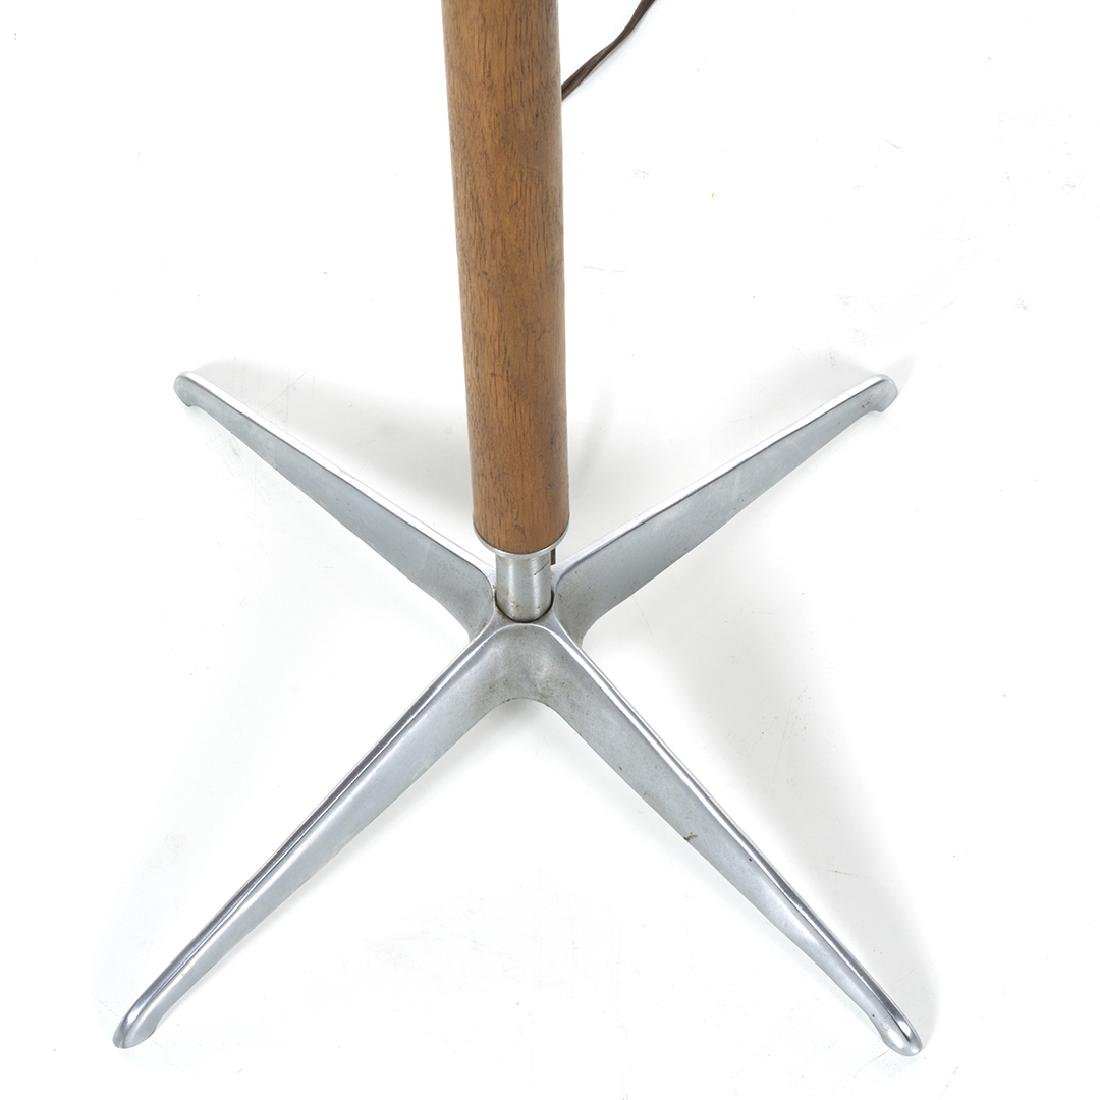 Gerald Thurston Floor Lamp - 2